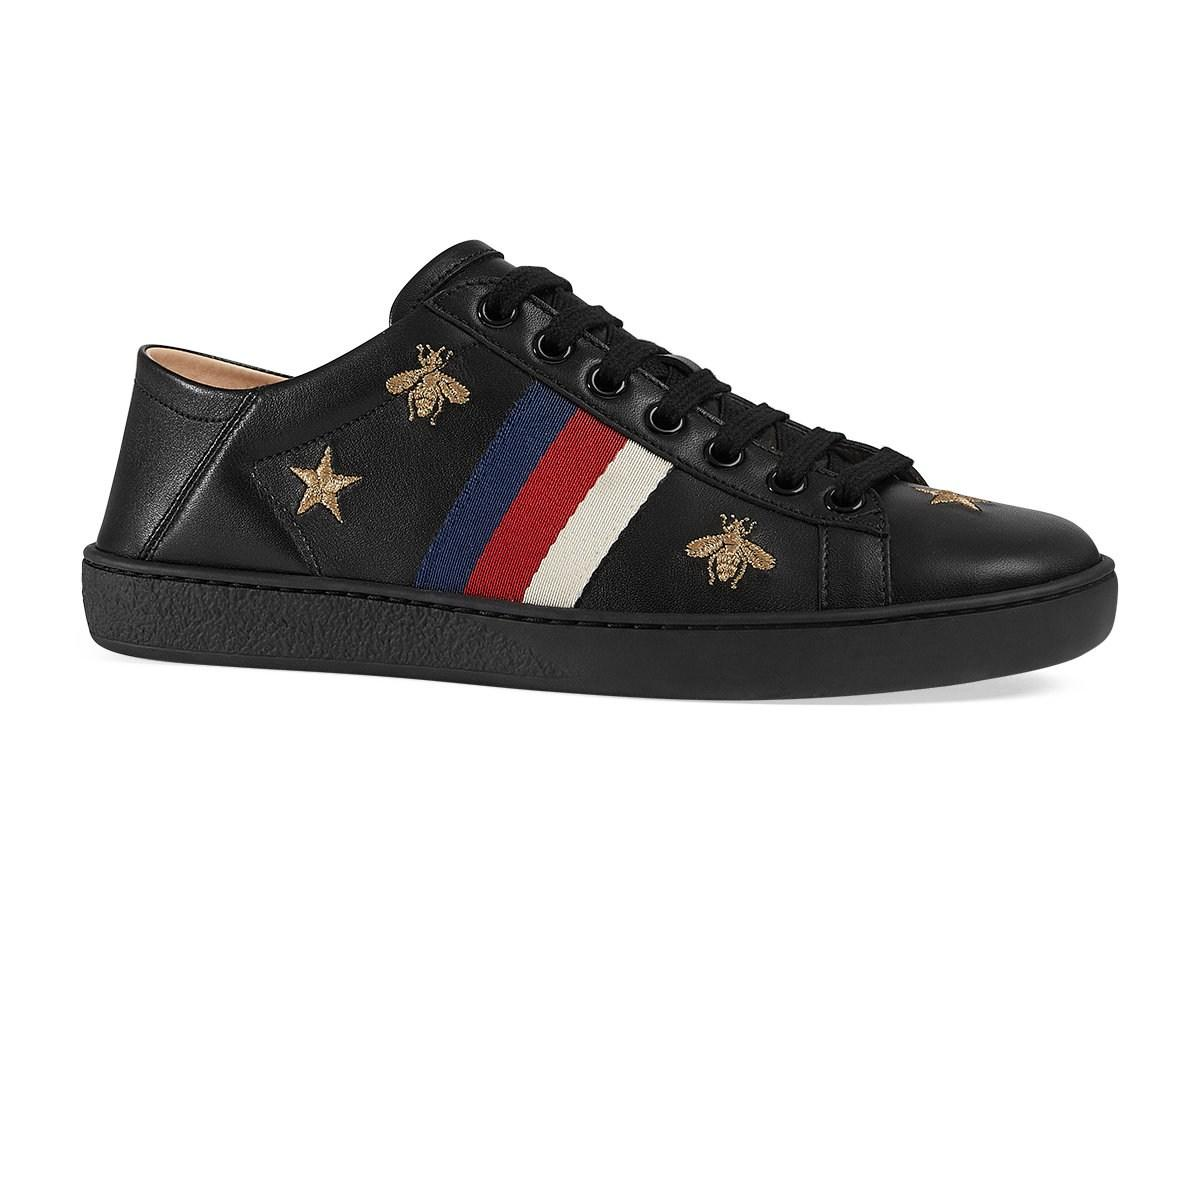 db785ca6f41 Gucci - Black New Ace Embroidered Leather Sneakers - Lyst. View fullscreen